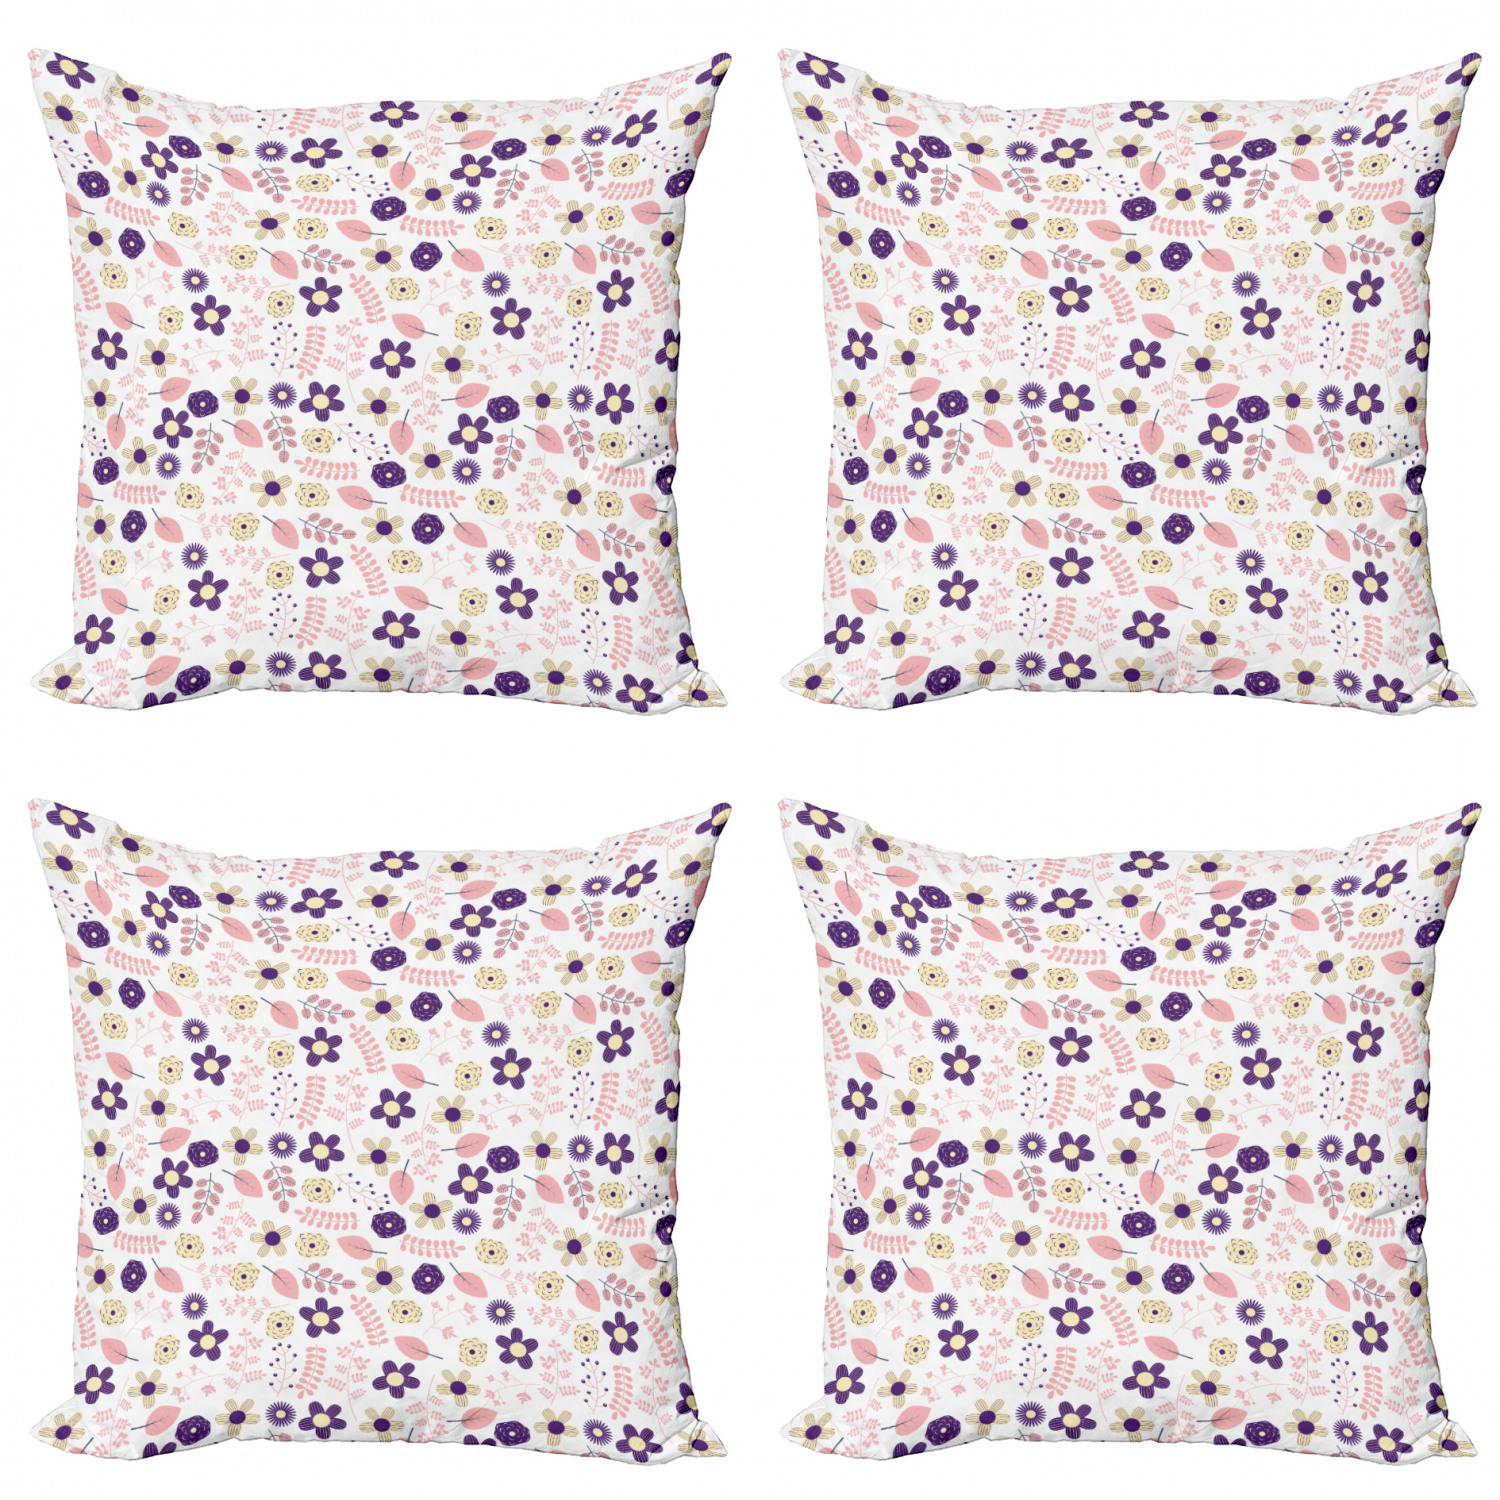 Ambesonne-Floral-Drawings-Cushion-Cover-Set-of-4-for-Couch-and-Bed-in-4-Sizes thumbnail 31